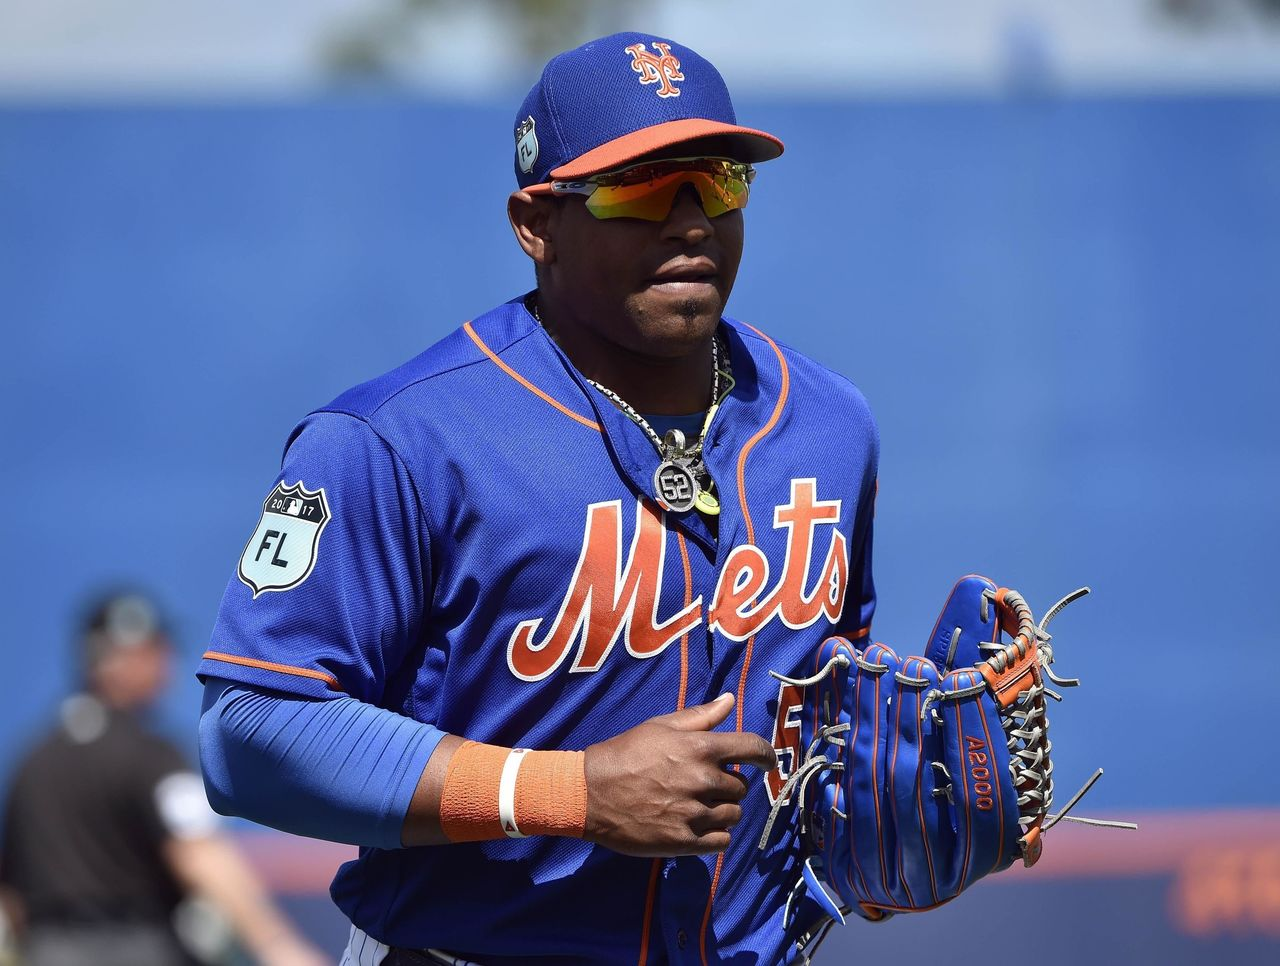 Cropped 2017 02 27t192452z 917384382 nocid rtrmadp 3 mlb spring training houston astros at new york mets